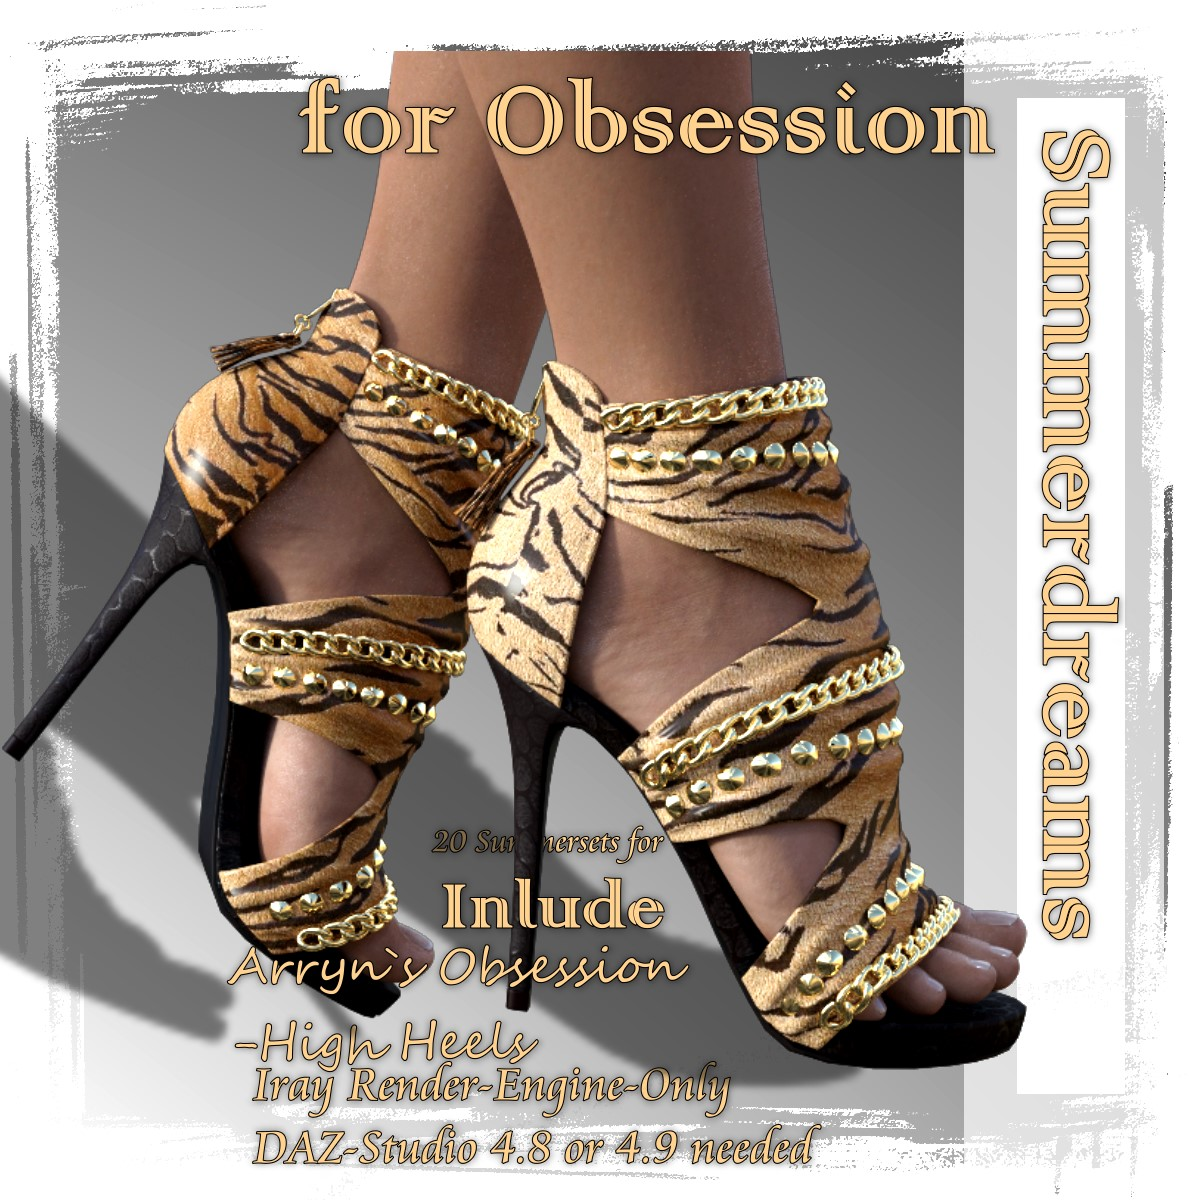 Summerdreams - for Obsession High-Heels